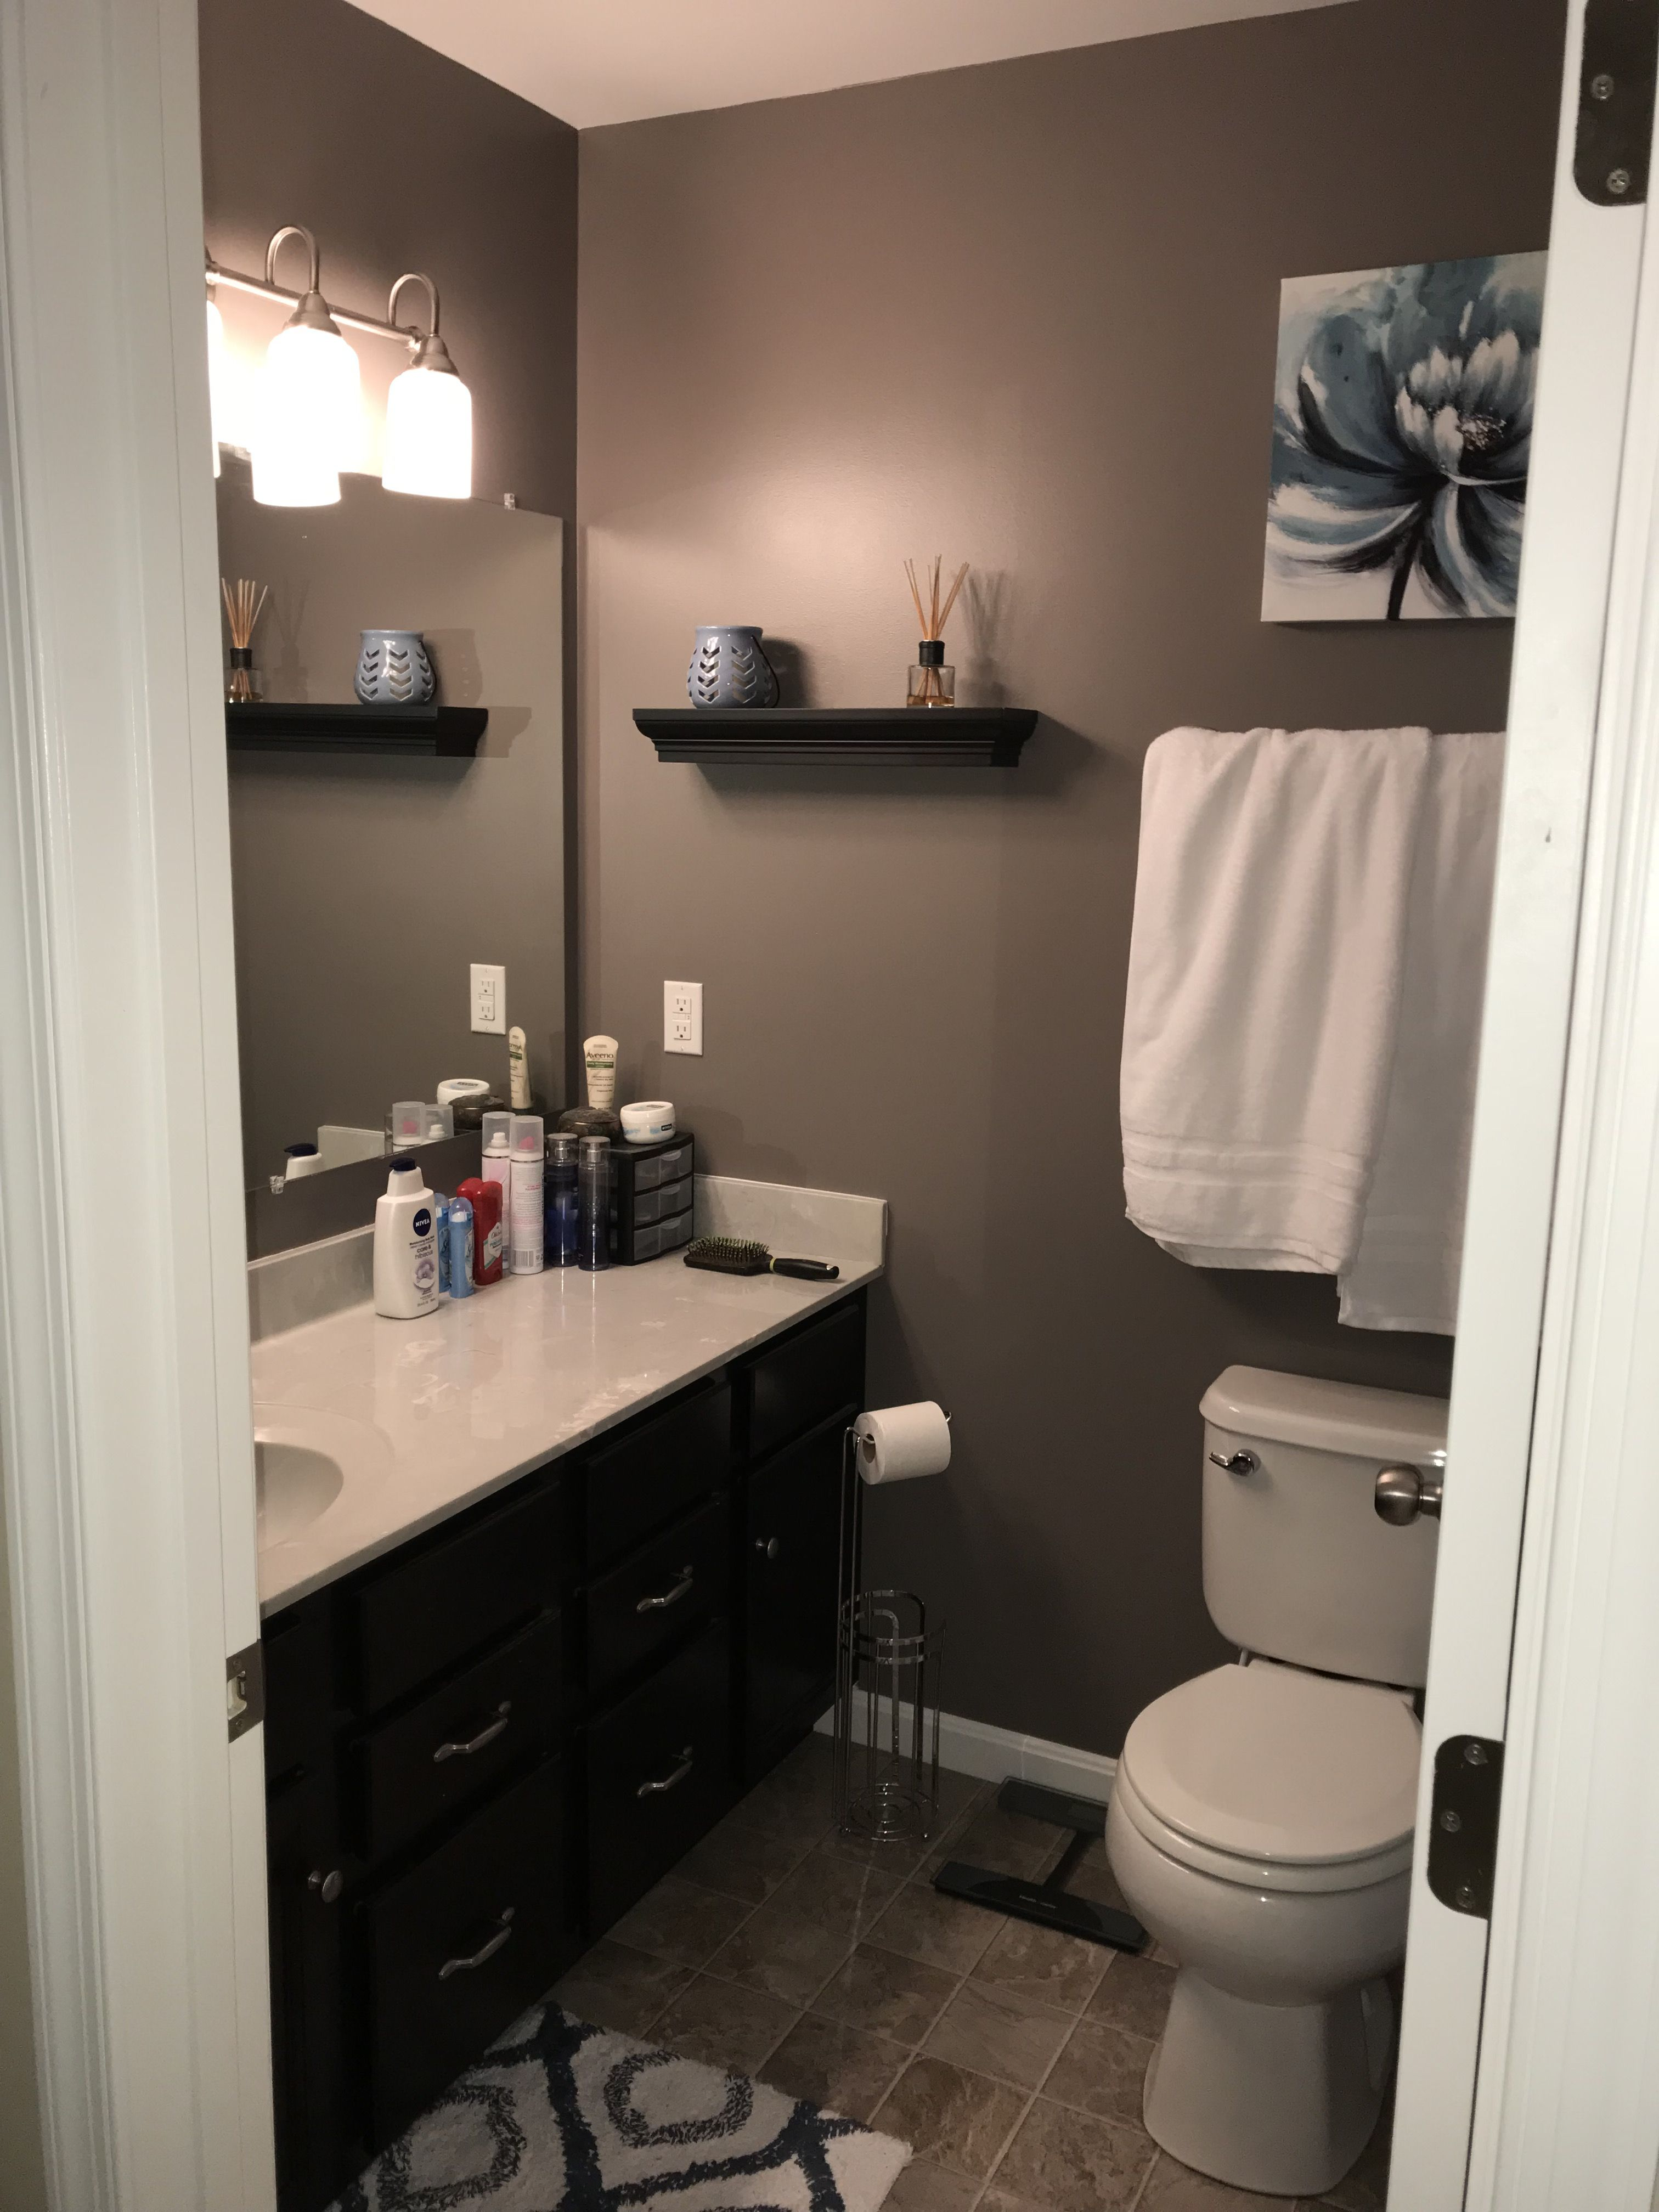 Sherwin Williams Mink In Small Master Bathroom With No Windows